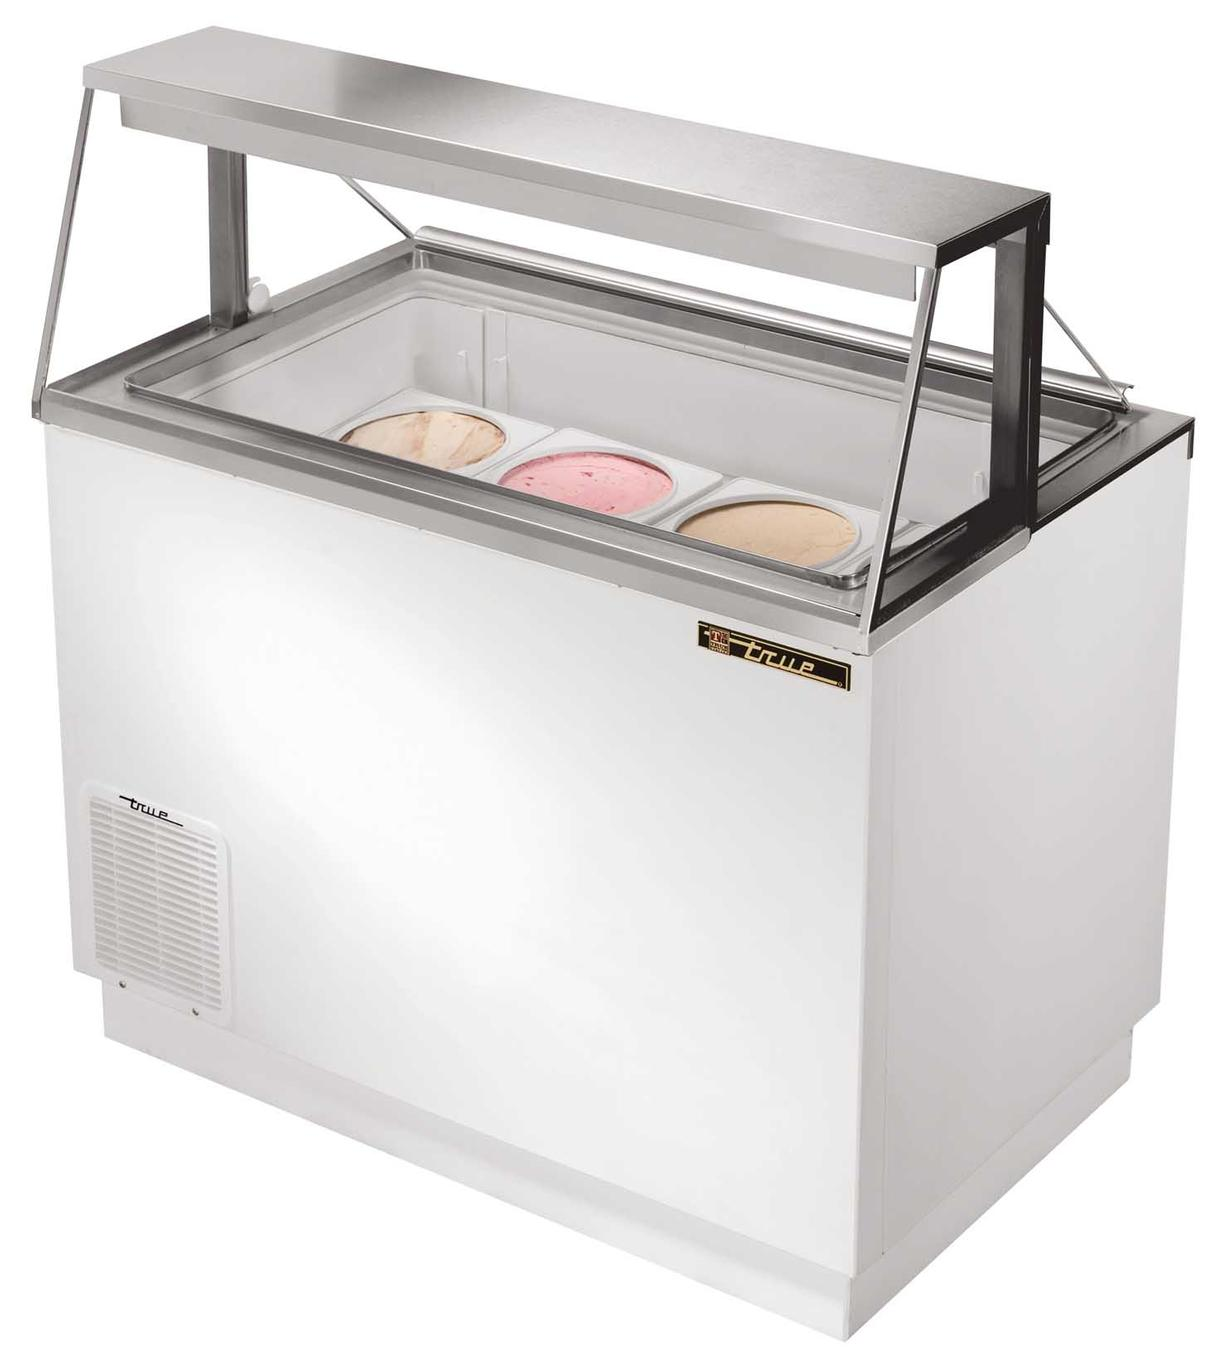 True Tdc 47 8 Flavor Ice Cream Dipping Cabinet Holds 12